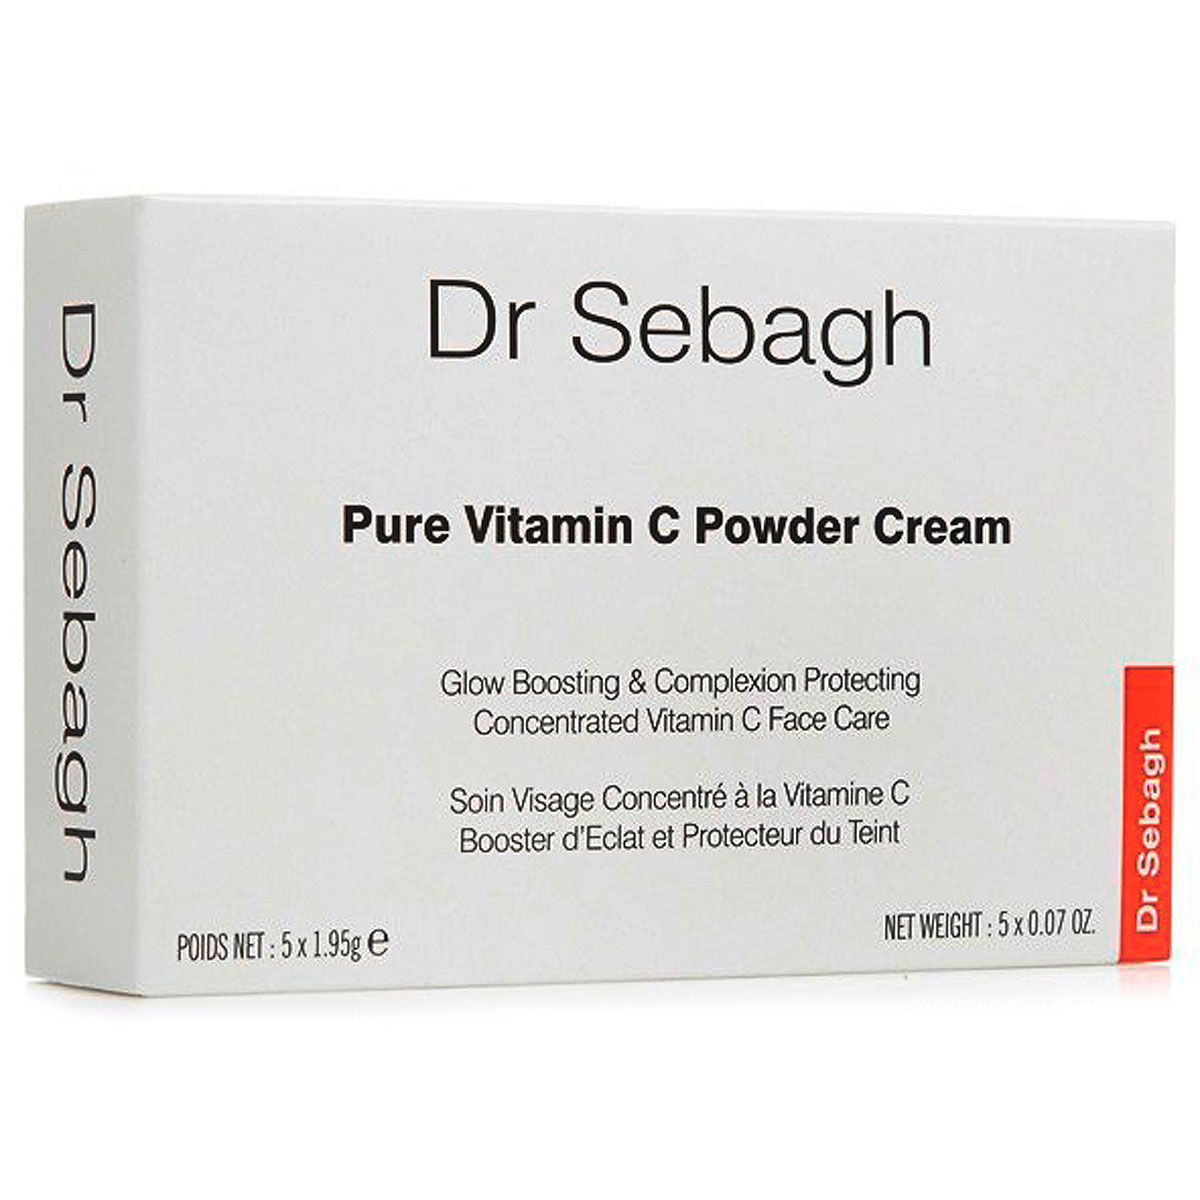 Dr Sebagh Beauty for Women, Pure Vitamin C Powder Cream - 5 X 1.95 Gr, 2019, 5 x 1.95 gr